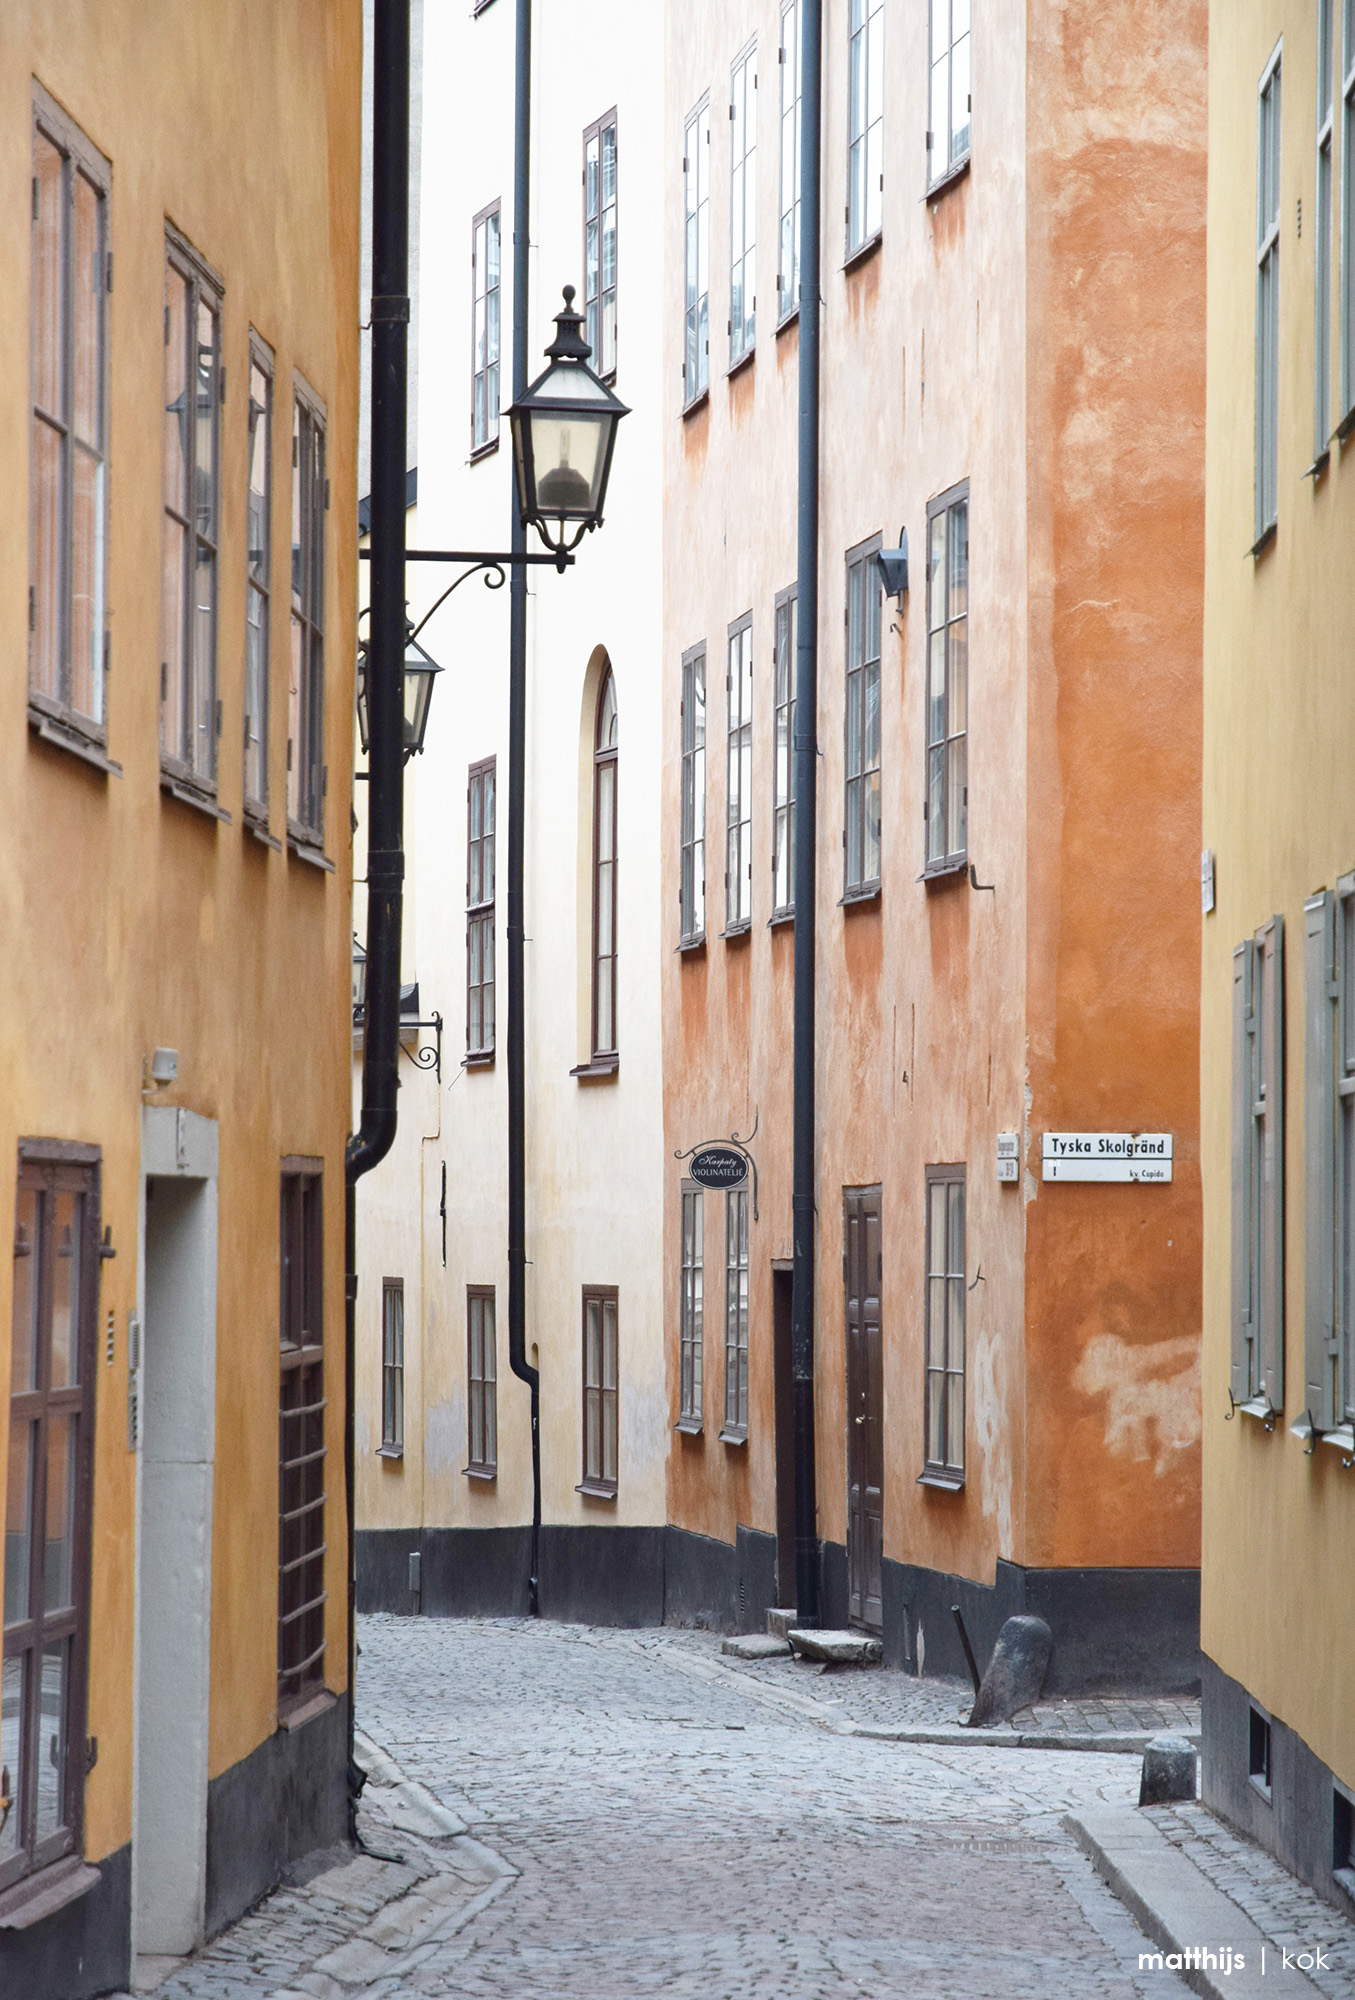 Picturesque Alleys of Gamla Stan, Stockholm, Sweden | Photo by Matthijs Kok